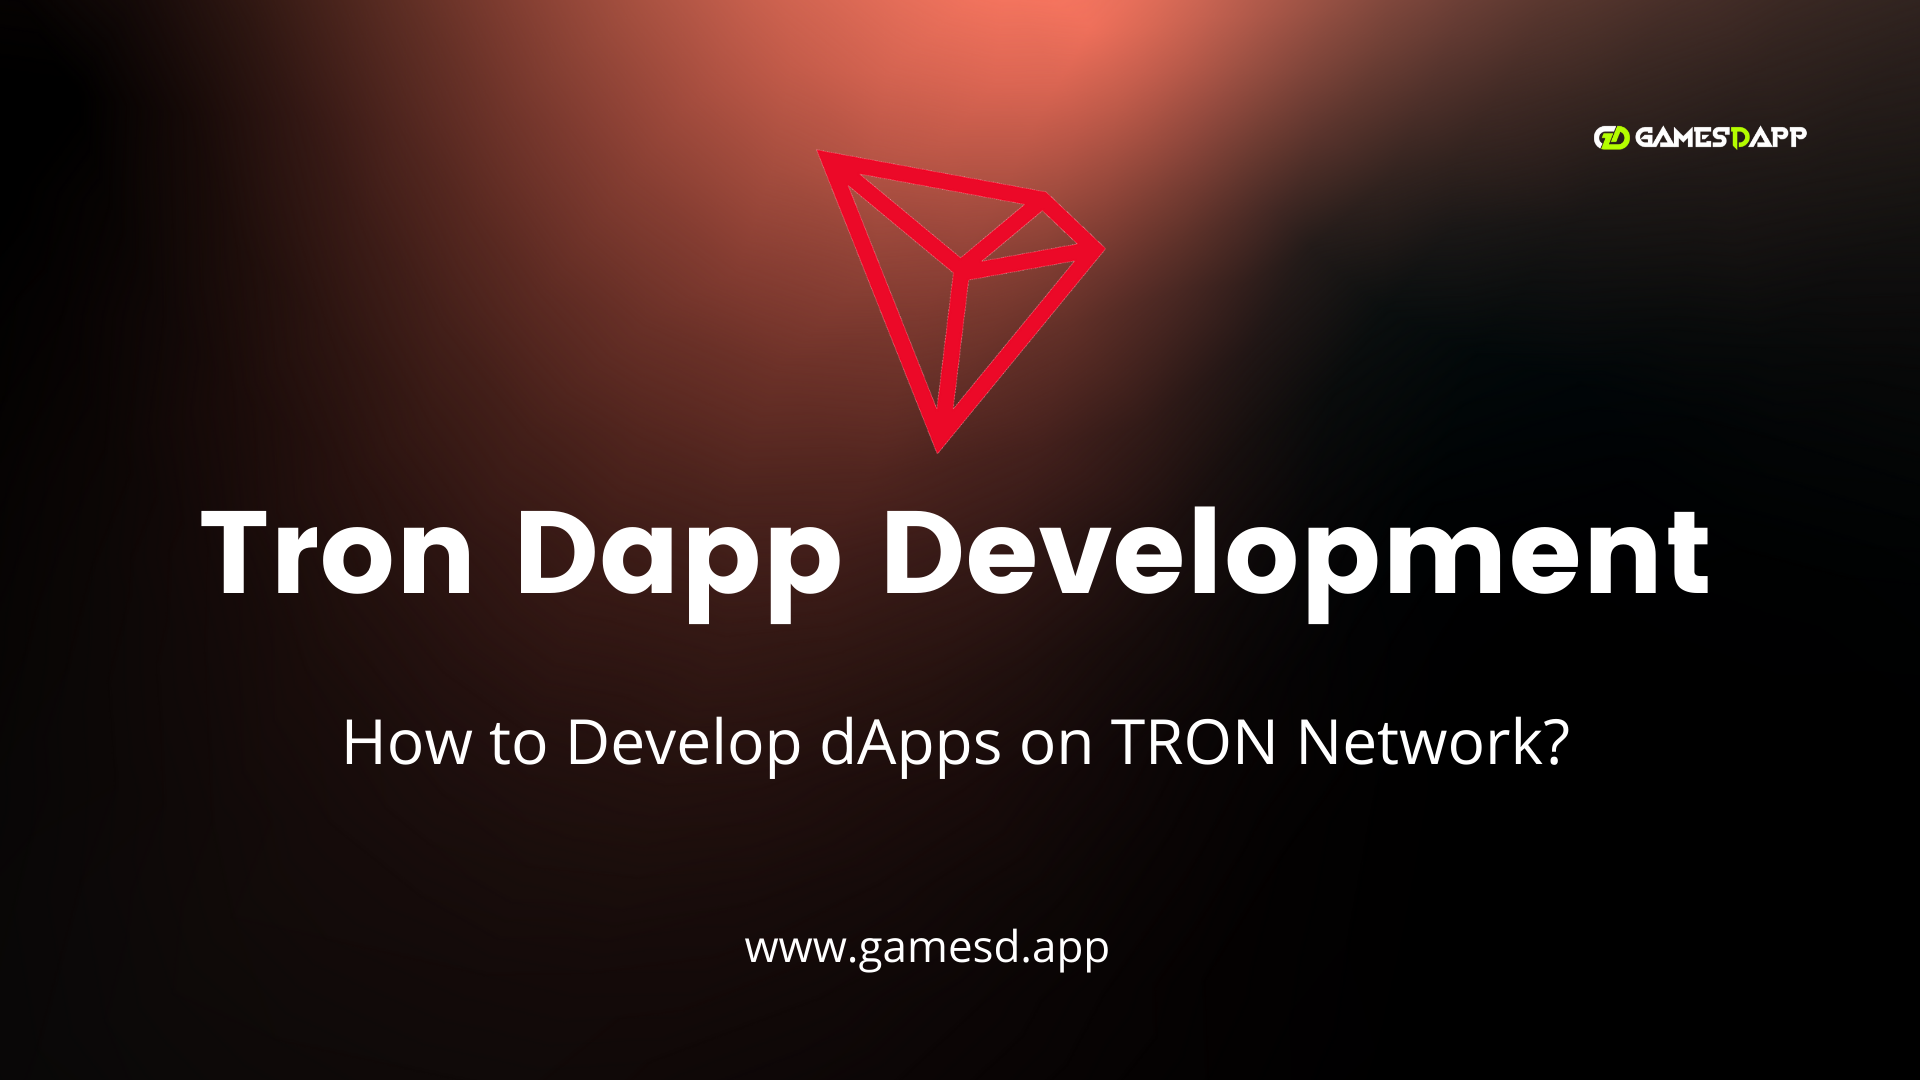 How to Develop dApps on TRON Network? - TRON DApp Development Company